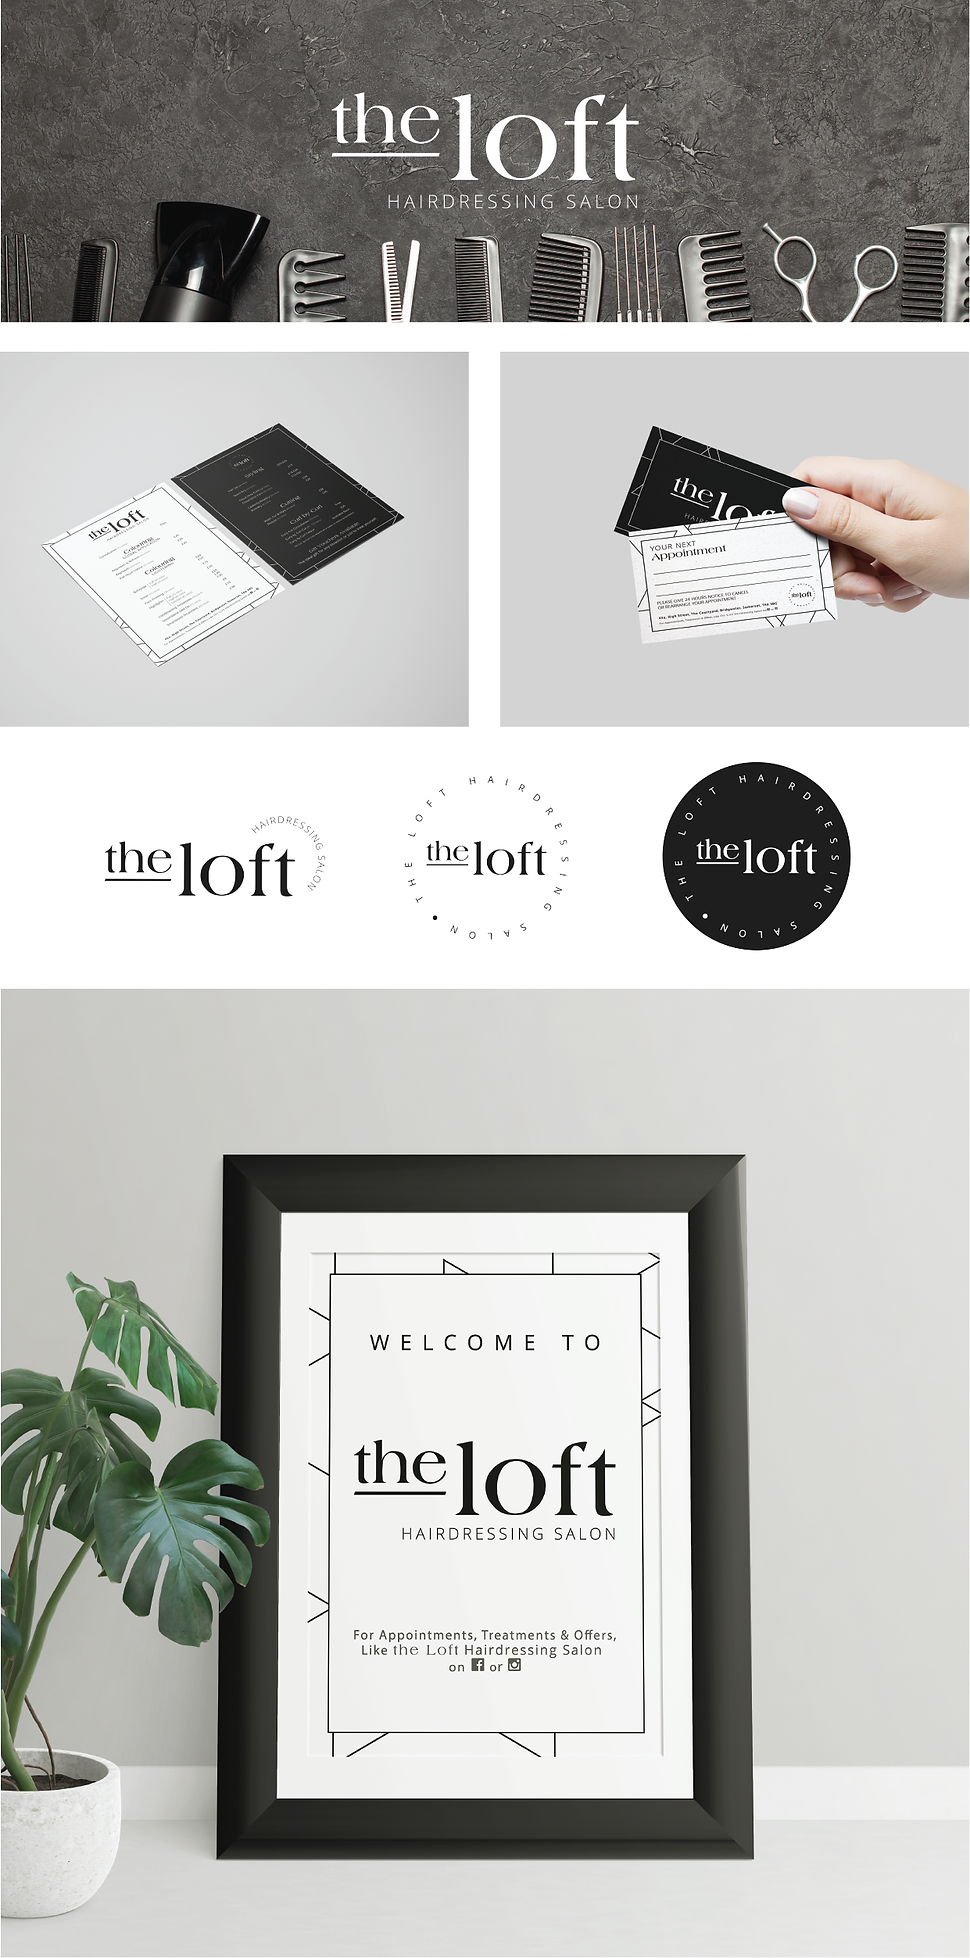 The Loft - Brand Showcase-01.png